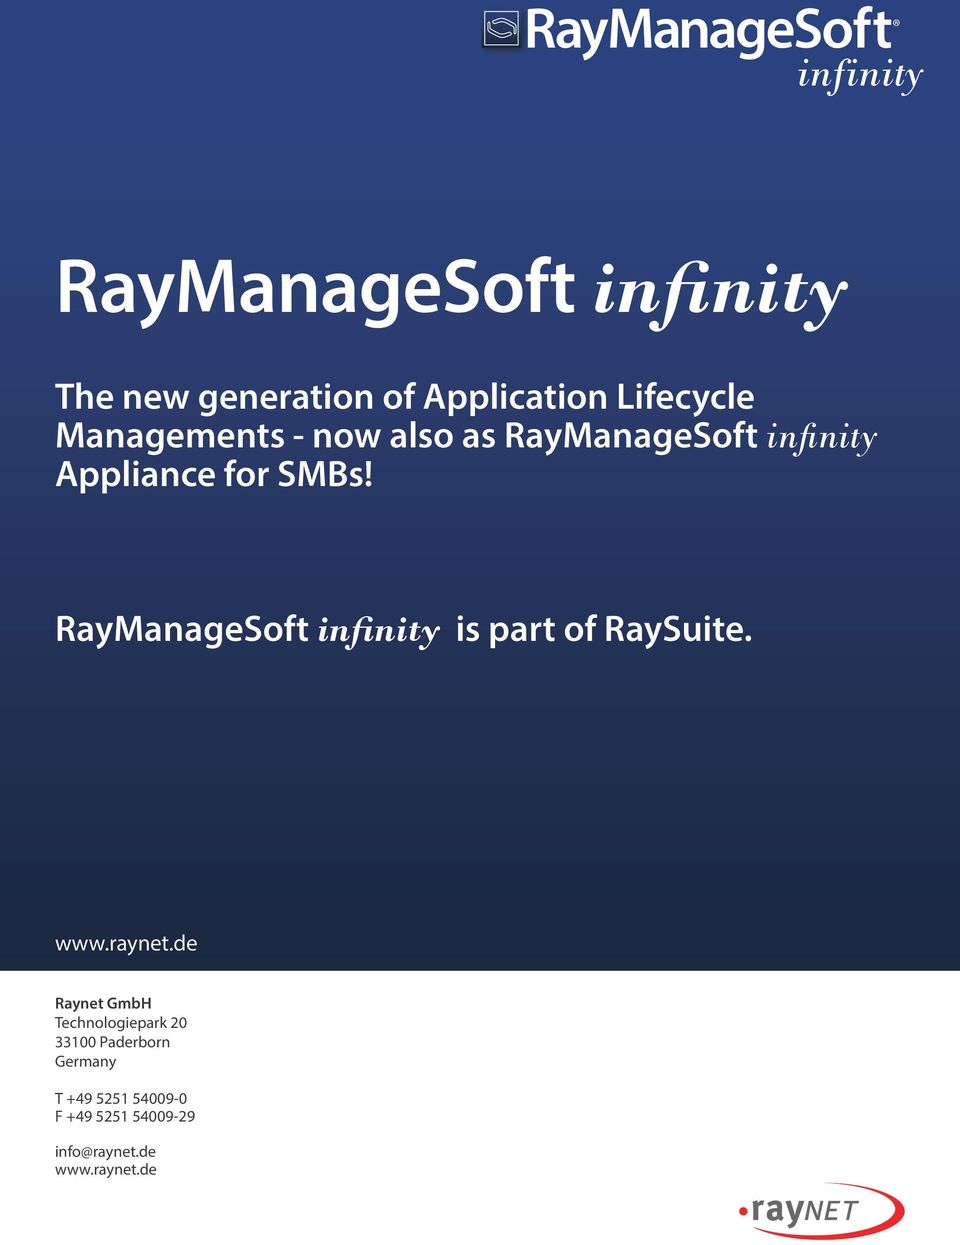 RayManageSoft is part of RaySuite. www.raynet.